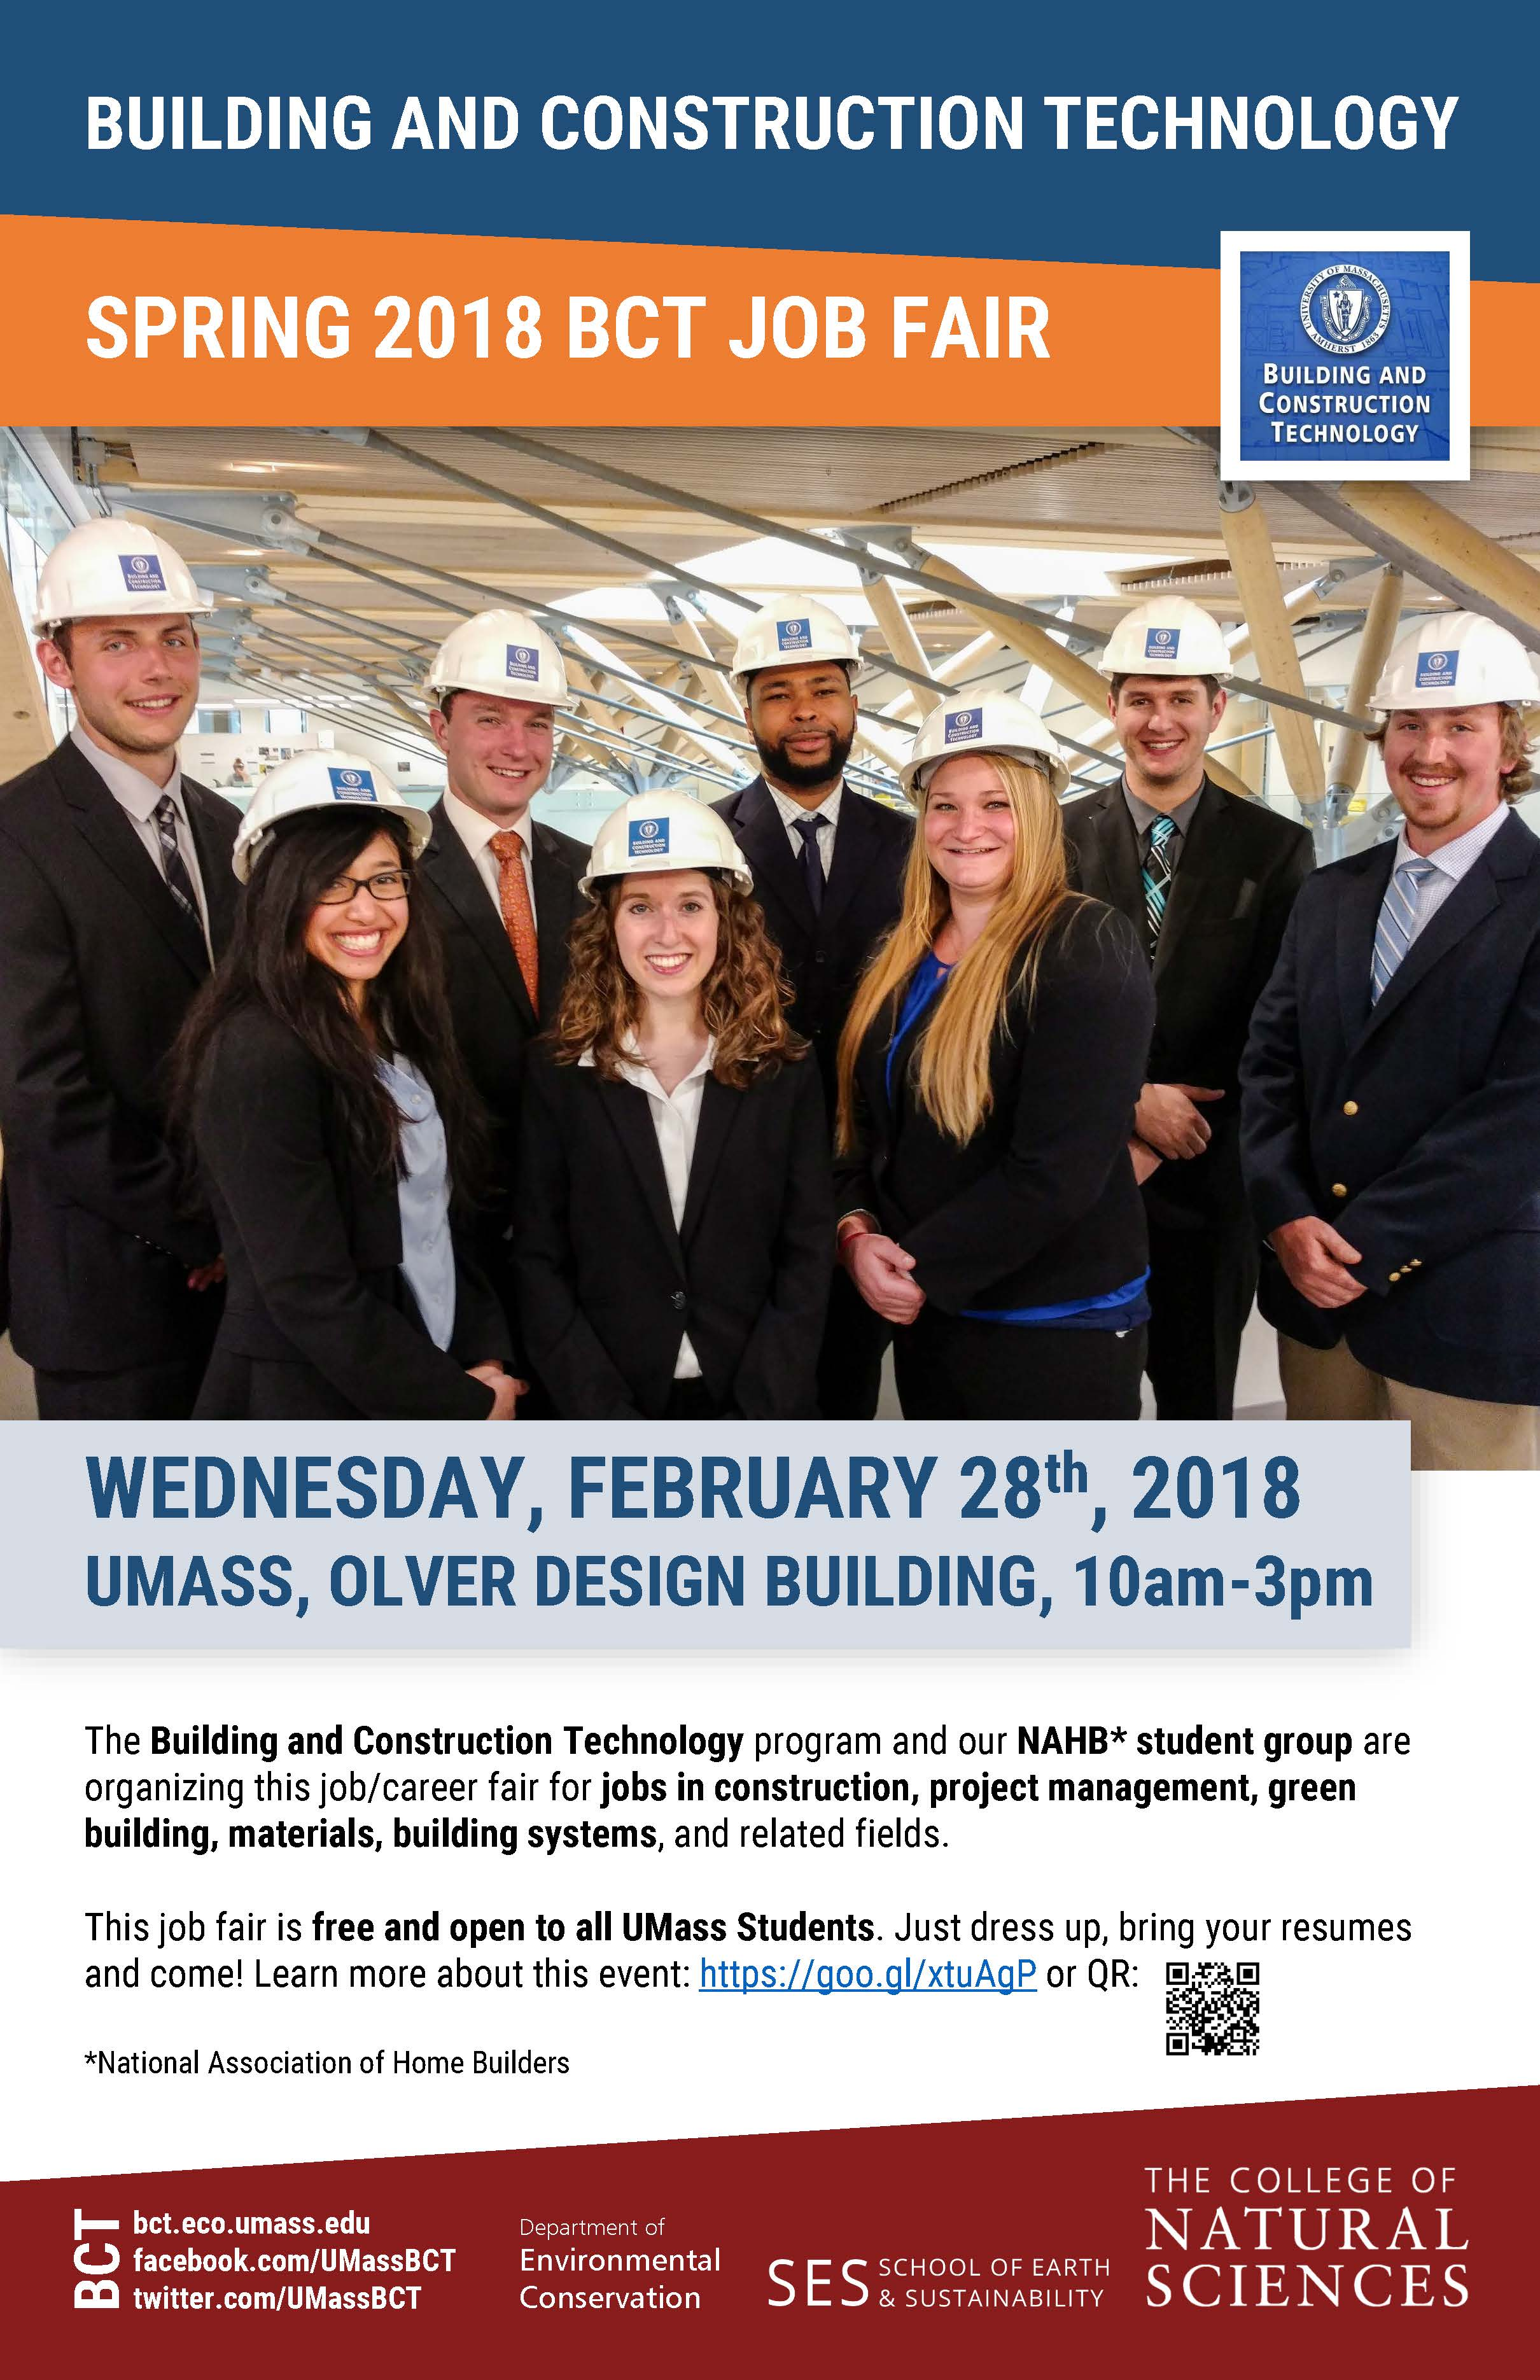 Bcts spring 2018 job fair is next week building and construction bcts spring 2018 job fair is next week building and construction technology umass amherst reheart Gallery